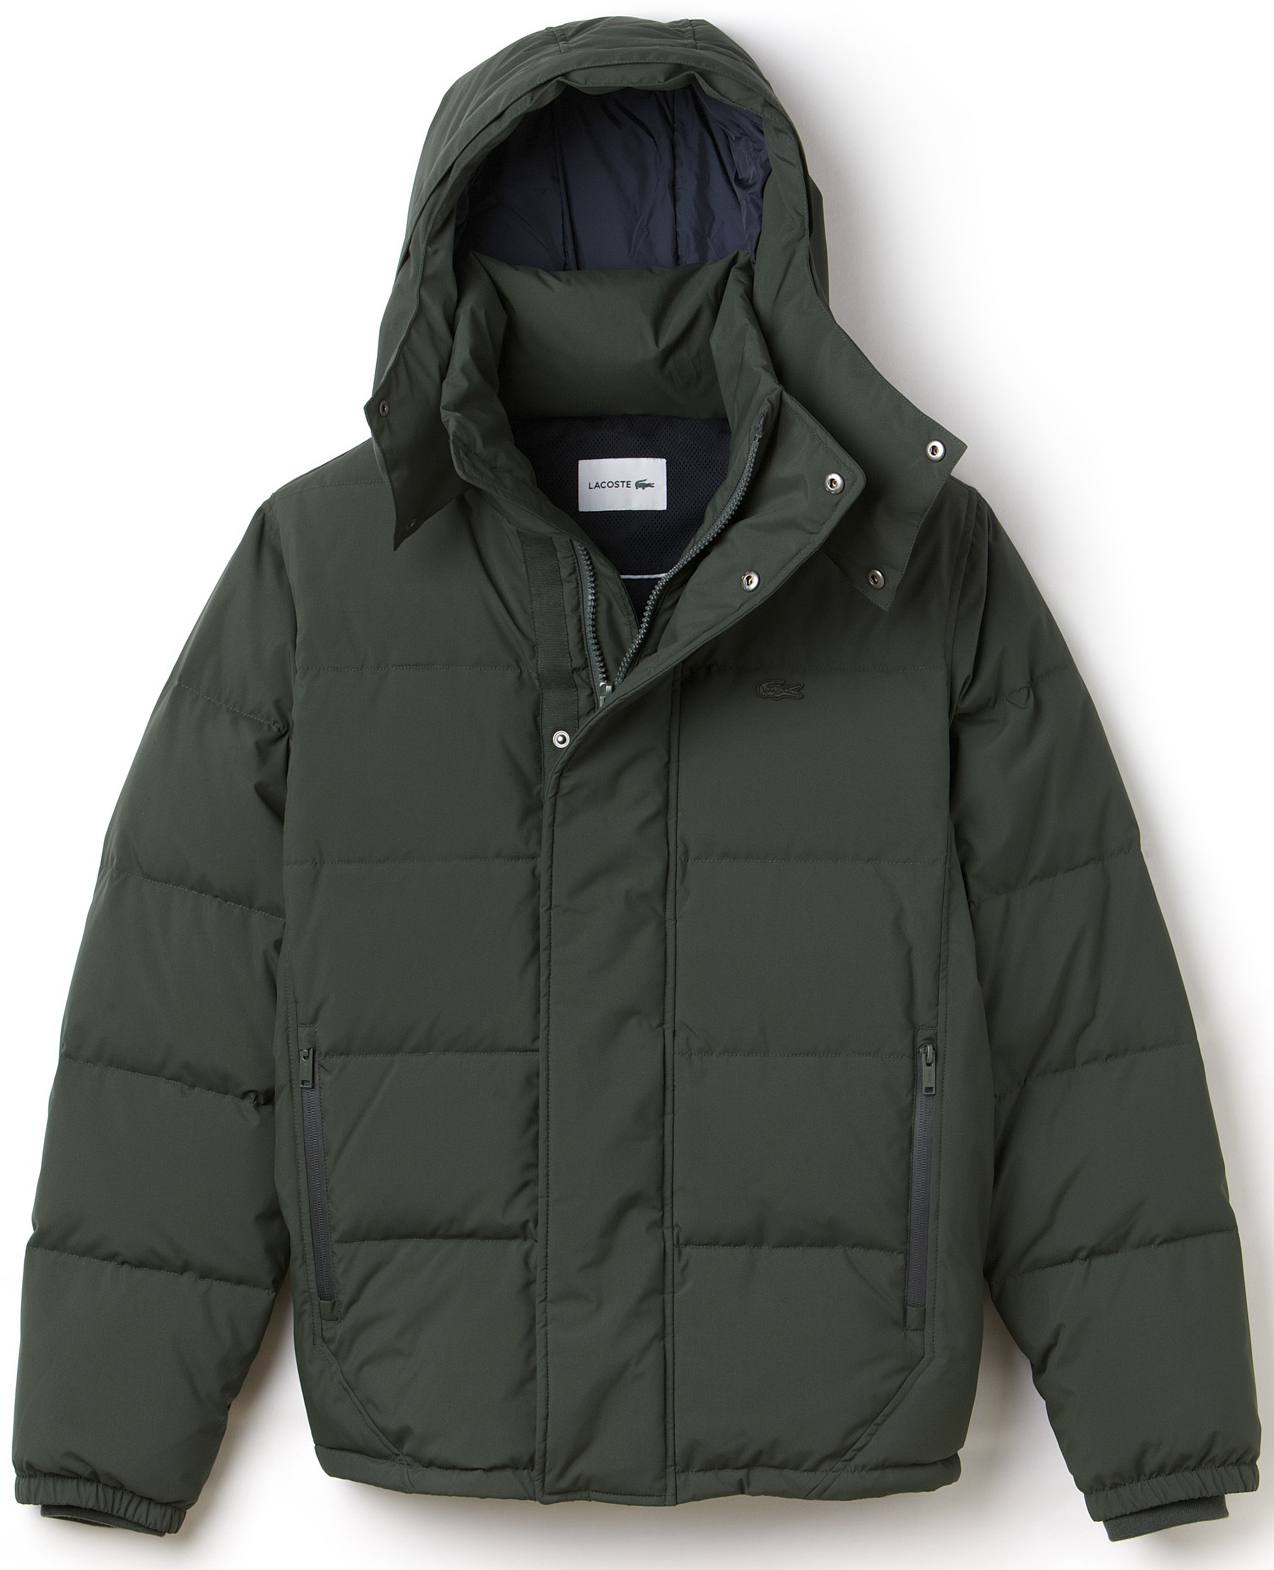 Lacoste Winter Weight Down Jacket, $395